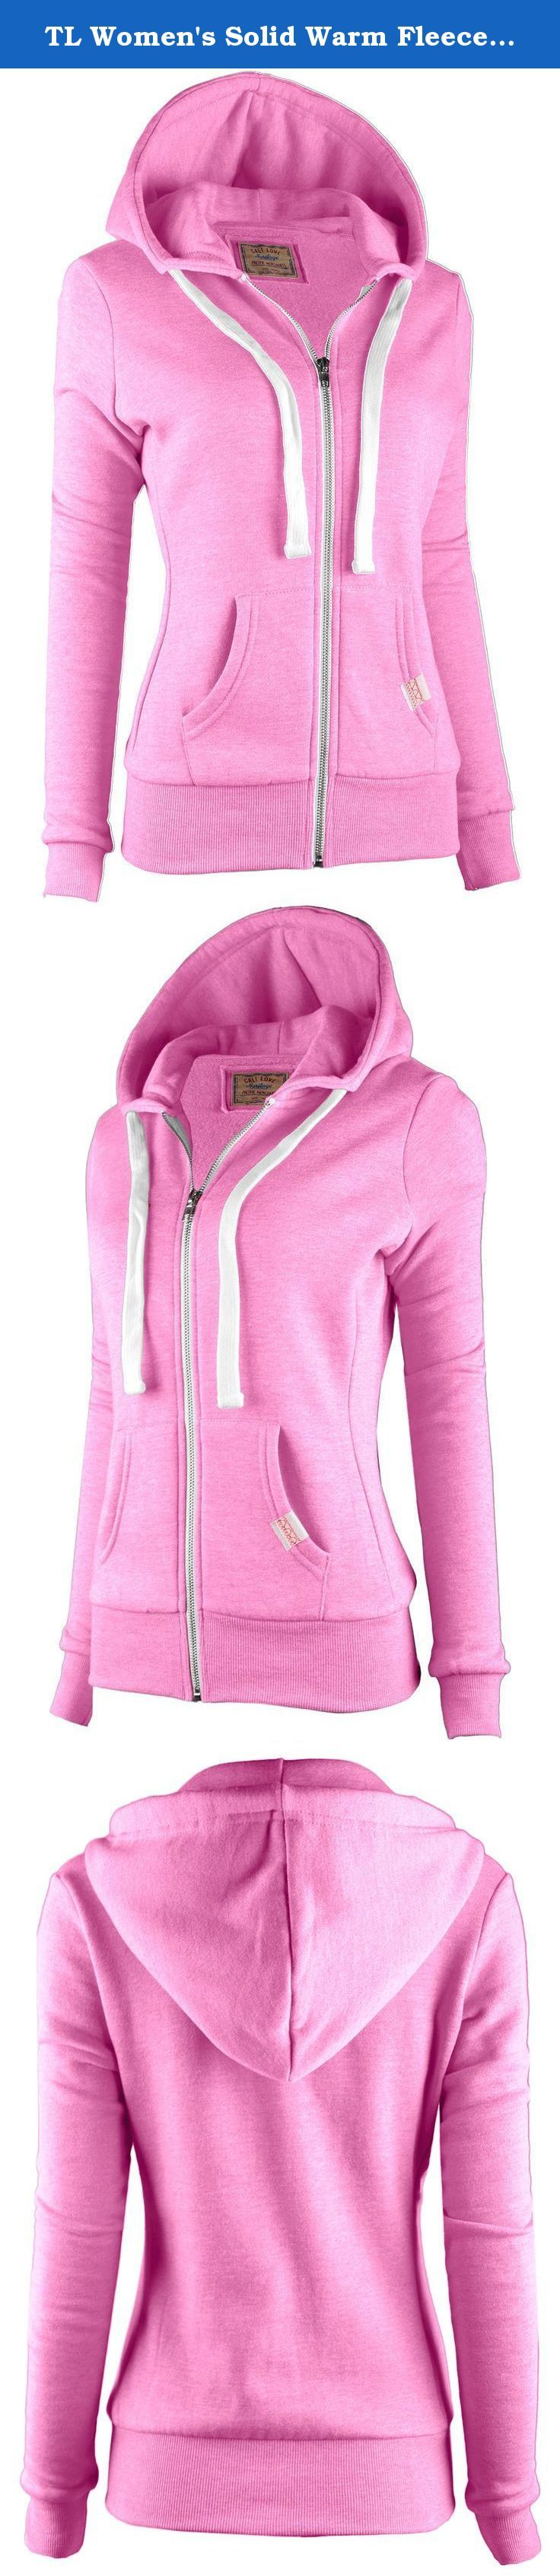 """TL Women's Solid Warm Fleece Active Long Casual Zip Up Hoodie Sweater Jackets J415 PINK L. Introducing newly arrived Heavy Inner Fleece hoodie jacket is ESSENTIAL STATEMENT PIECE for your wardrobe!! YOU MUST HAVE IT!!MUST-HAVE HOODIE ZIP-UPs FOR THE SEASON - We all need these warm hoodie zip up around this time. Why not grab Top Legging Hoodie Zip Up now? :) SO MANY """"COLORS"""" TO CHOOSE FROM !! - Score your favorite color and style and the good new for fashion owls! Watch out for newer…"""